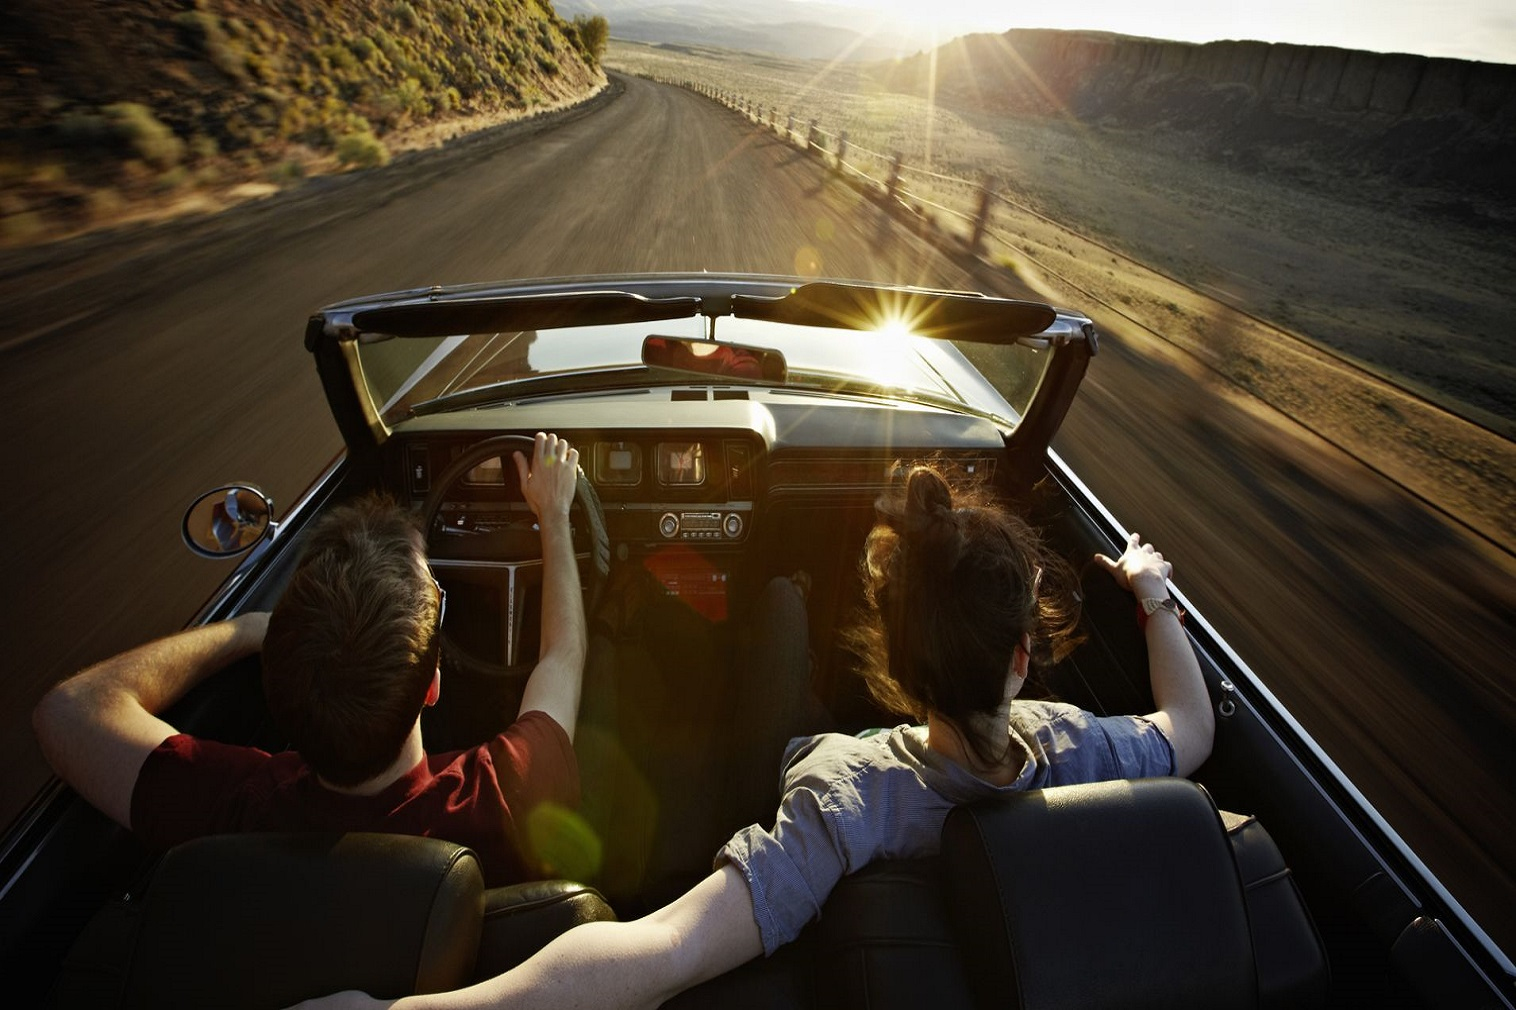 Many in the US are using a road trip as their break from everyday life, with most participants saying they would use the trip to escape to the mountains (35%) and just 12% stating they wanted to visit the city.